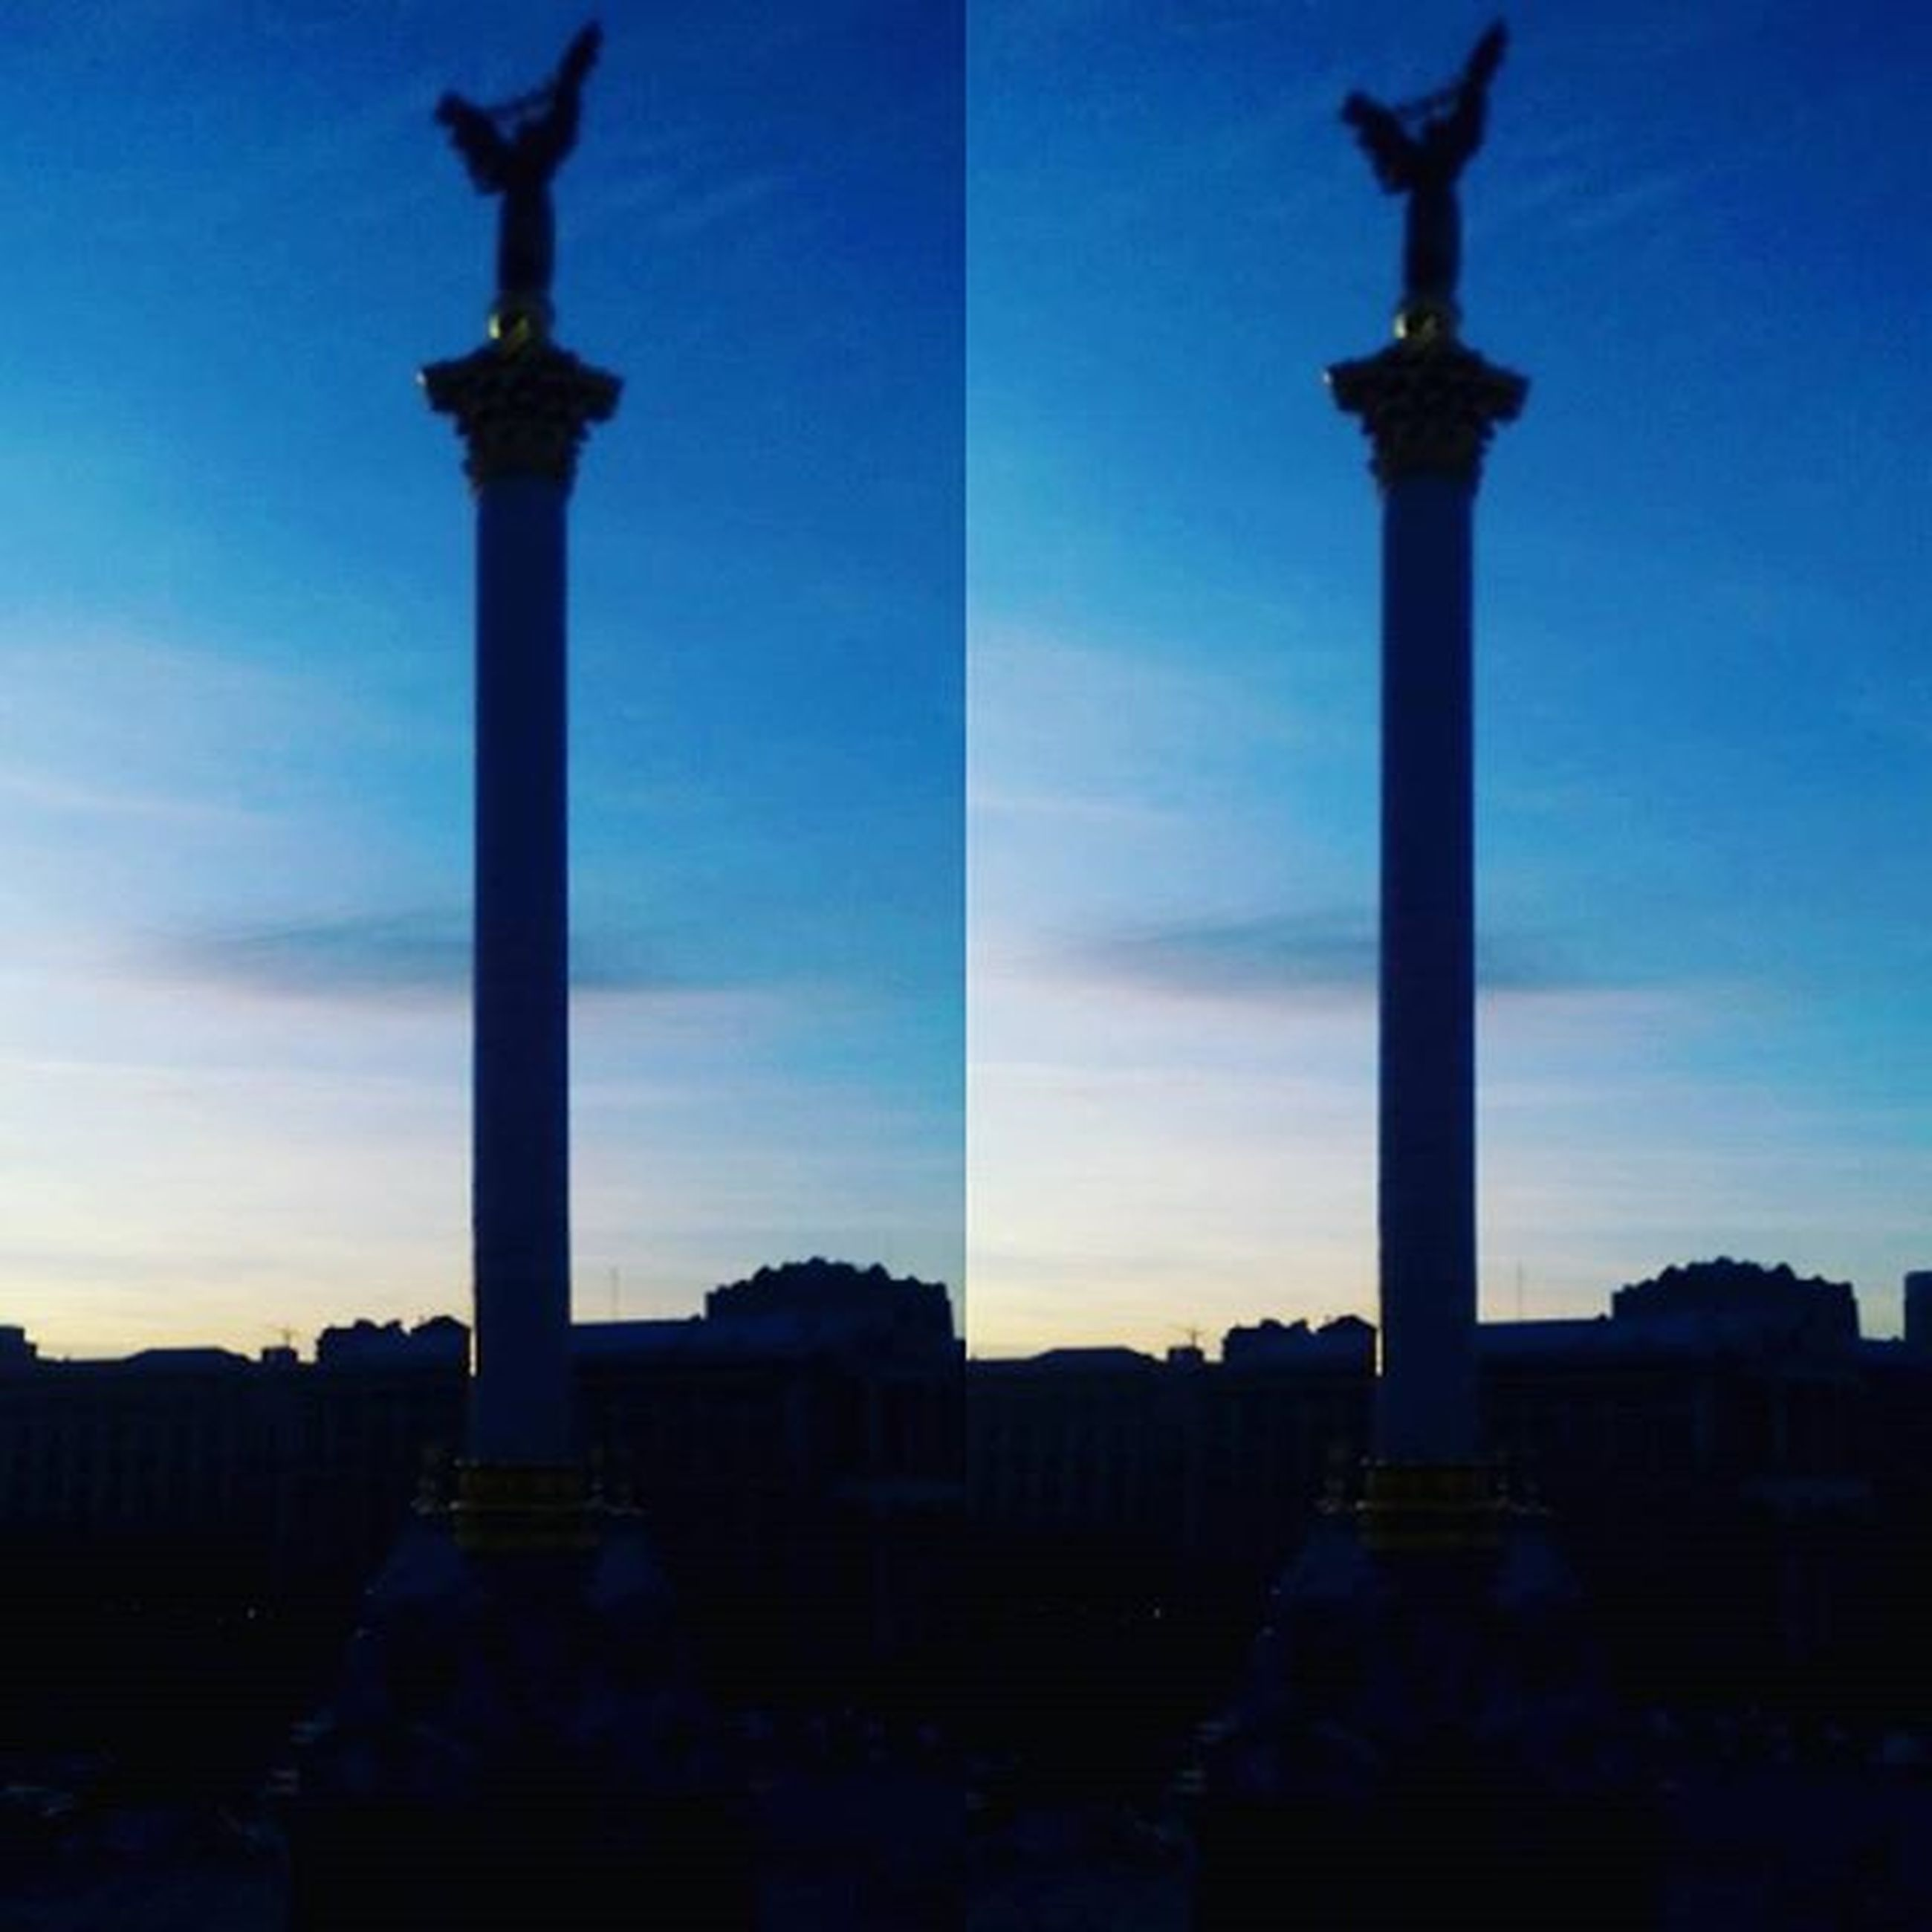 architecture, built structure, building exterior, silhouette, blue, low angle view, sky, religion, architectural column, dusk, place of worship, spirituality, history, street light, statue, column, famous place, cross, church